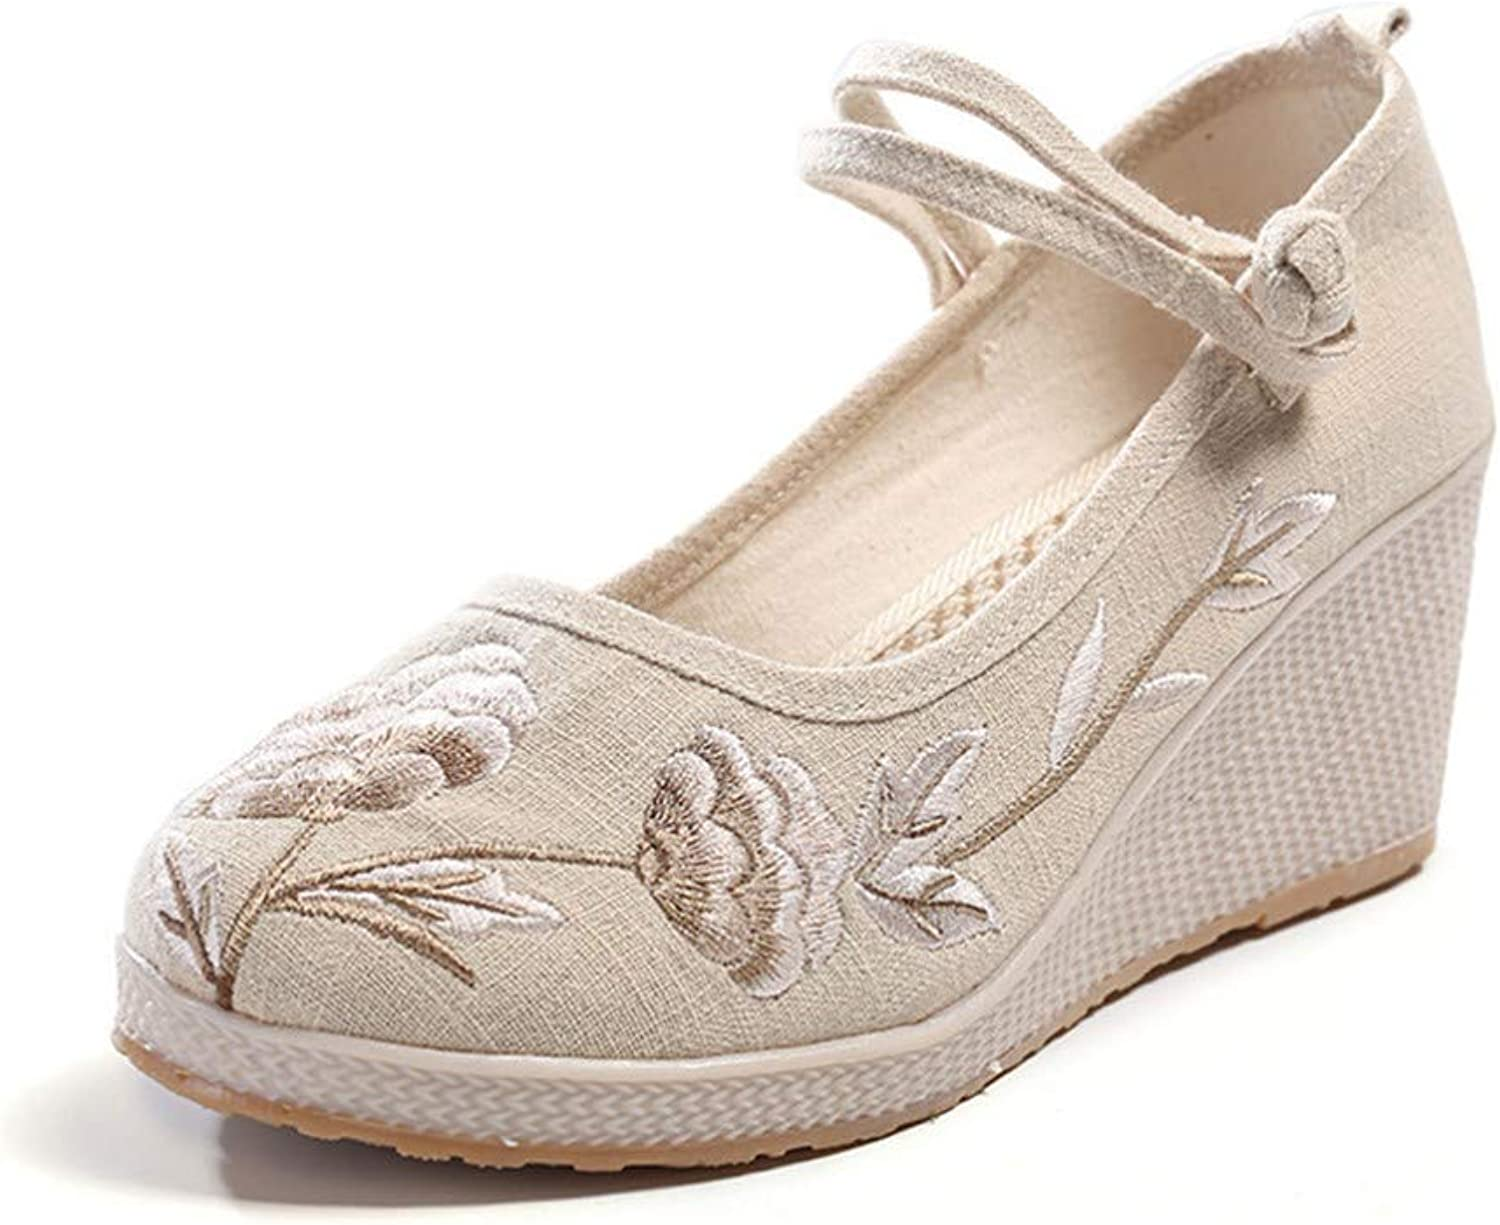 Cloth shoes, Embroidered shoes, Slopes, Heels, tendons, Soles, Women's shoes, Dancing shoes-YU&Xin